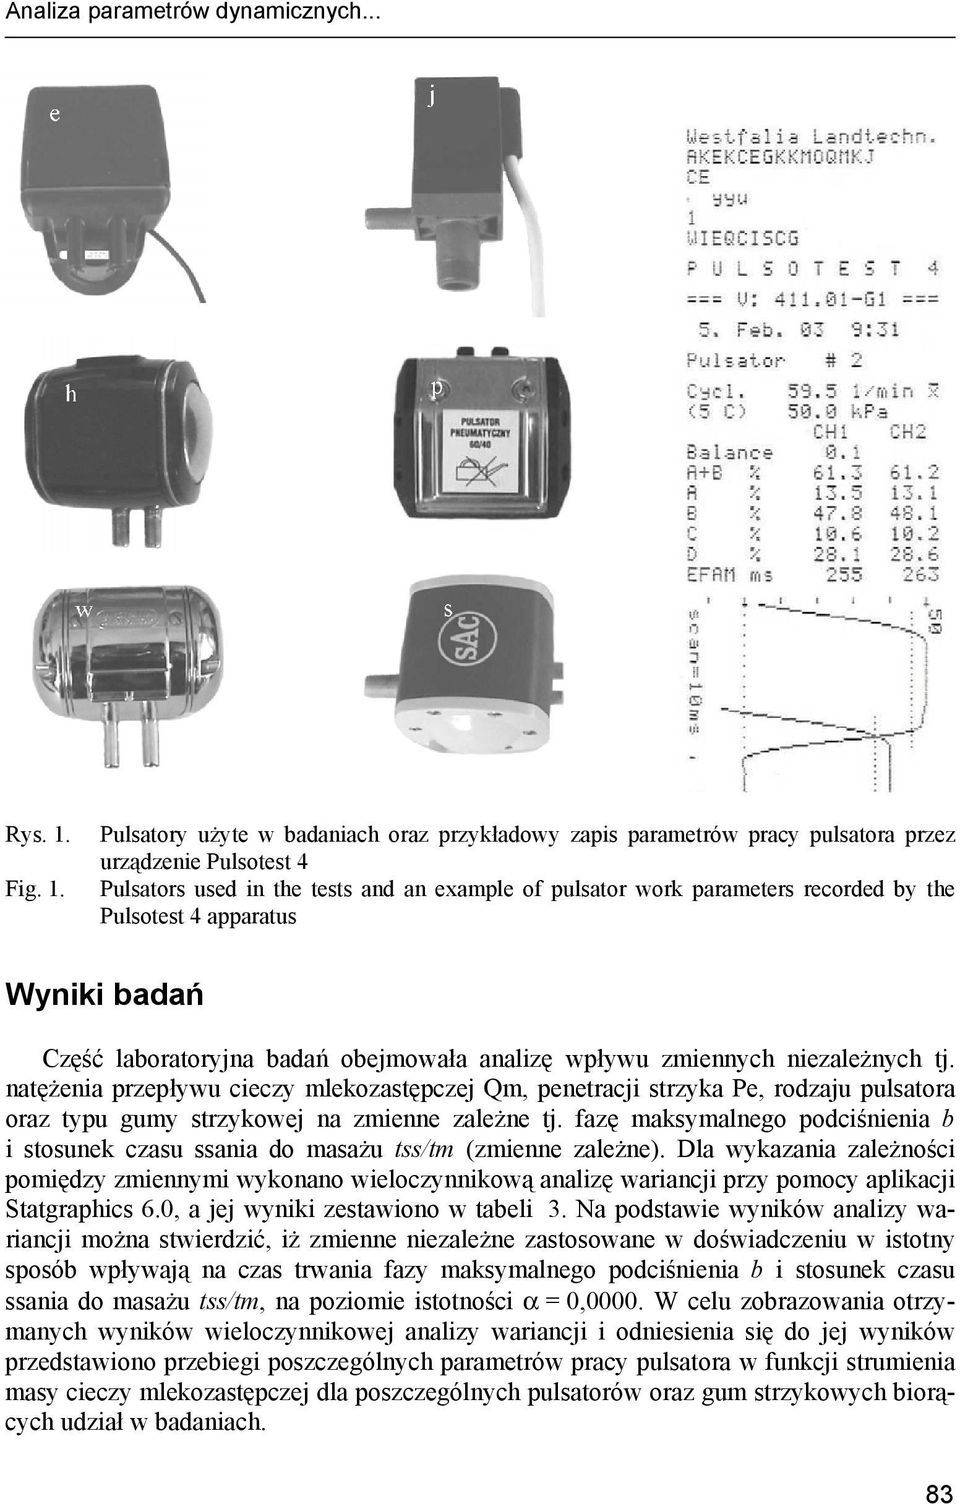 Pulsatory użyte w badaniach oraz przykładowy zapis parametrów pracy pulsatora przez urządzenie Pulsotest 4 Pulsators used in the tests and an example of pulsator work parameters recorded by the